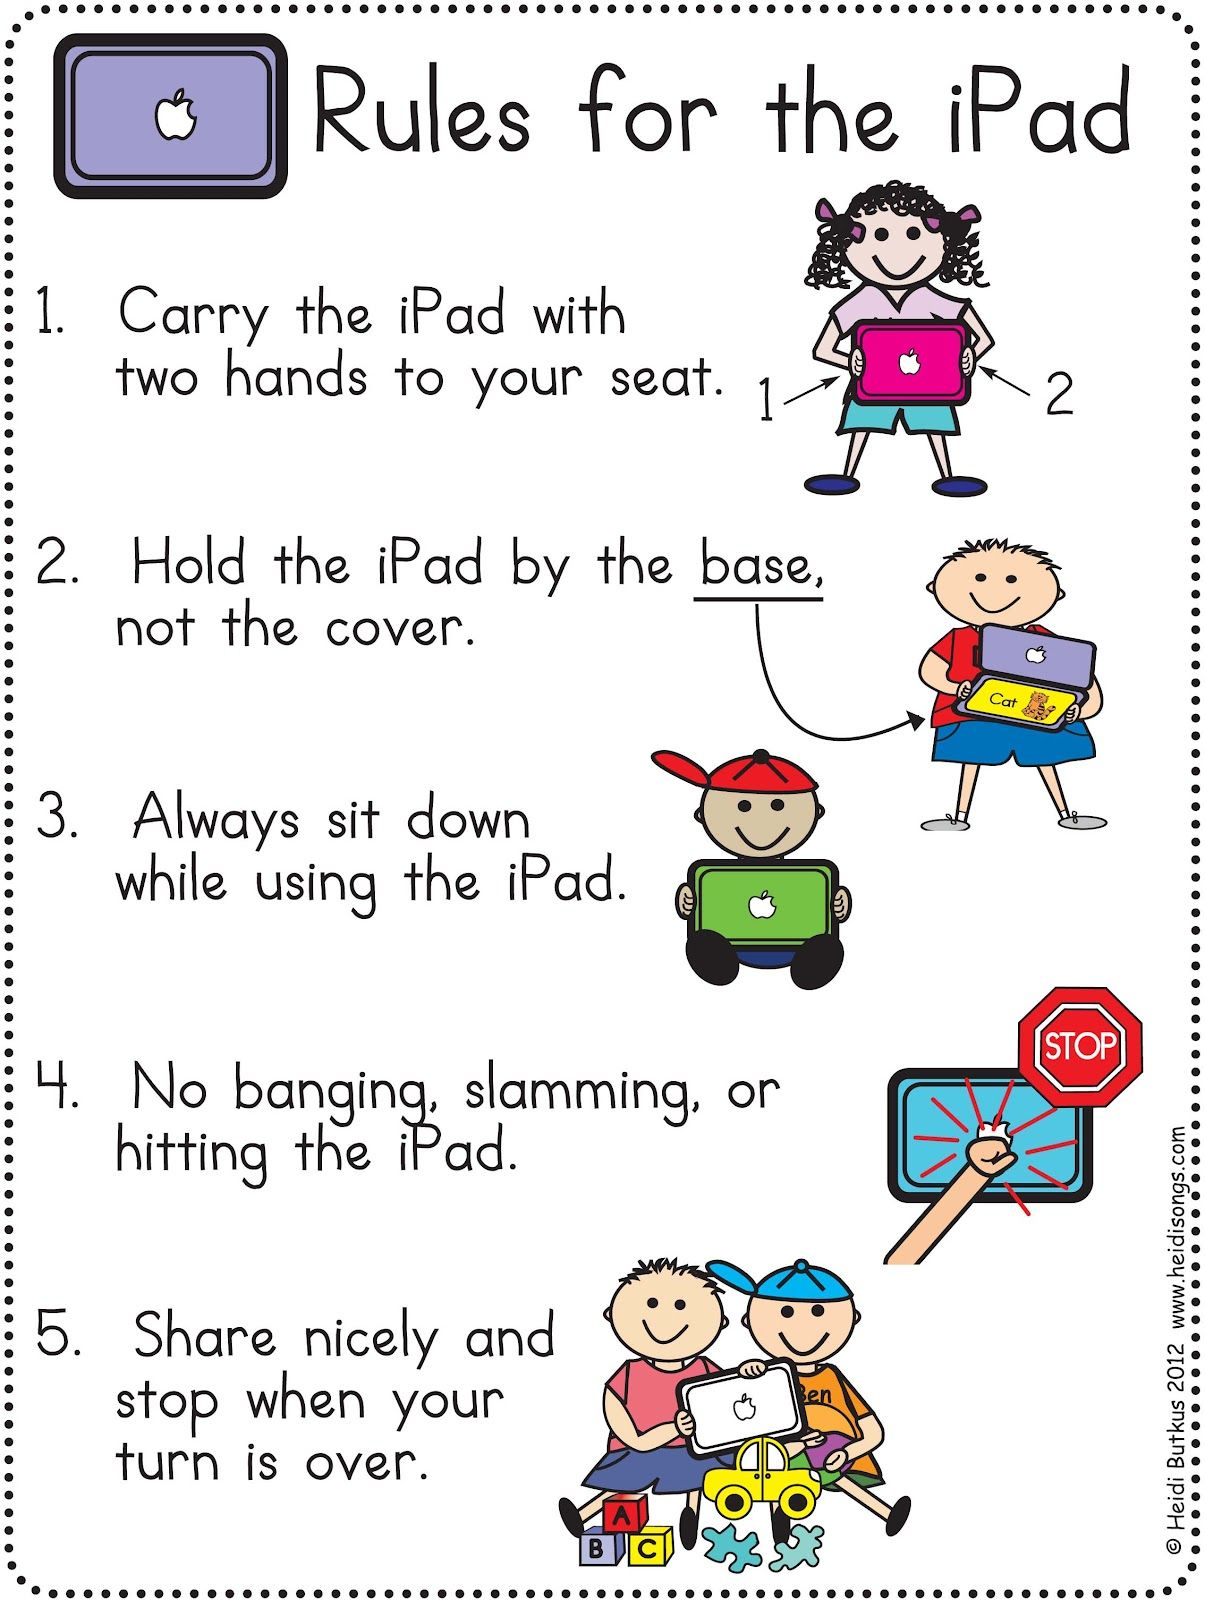 tips for the one ipad classroom, and a free ipad rules download